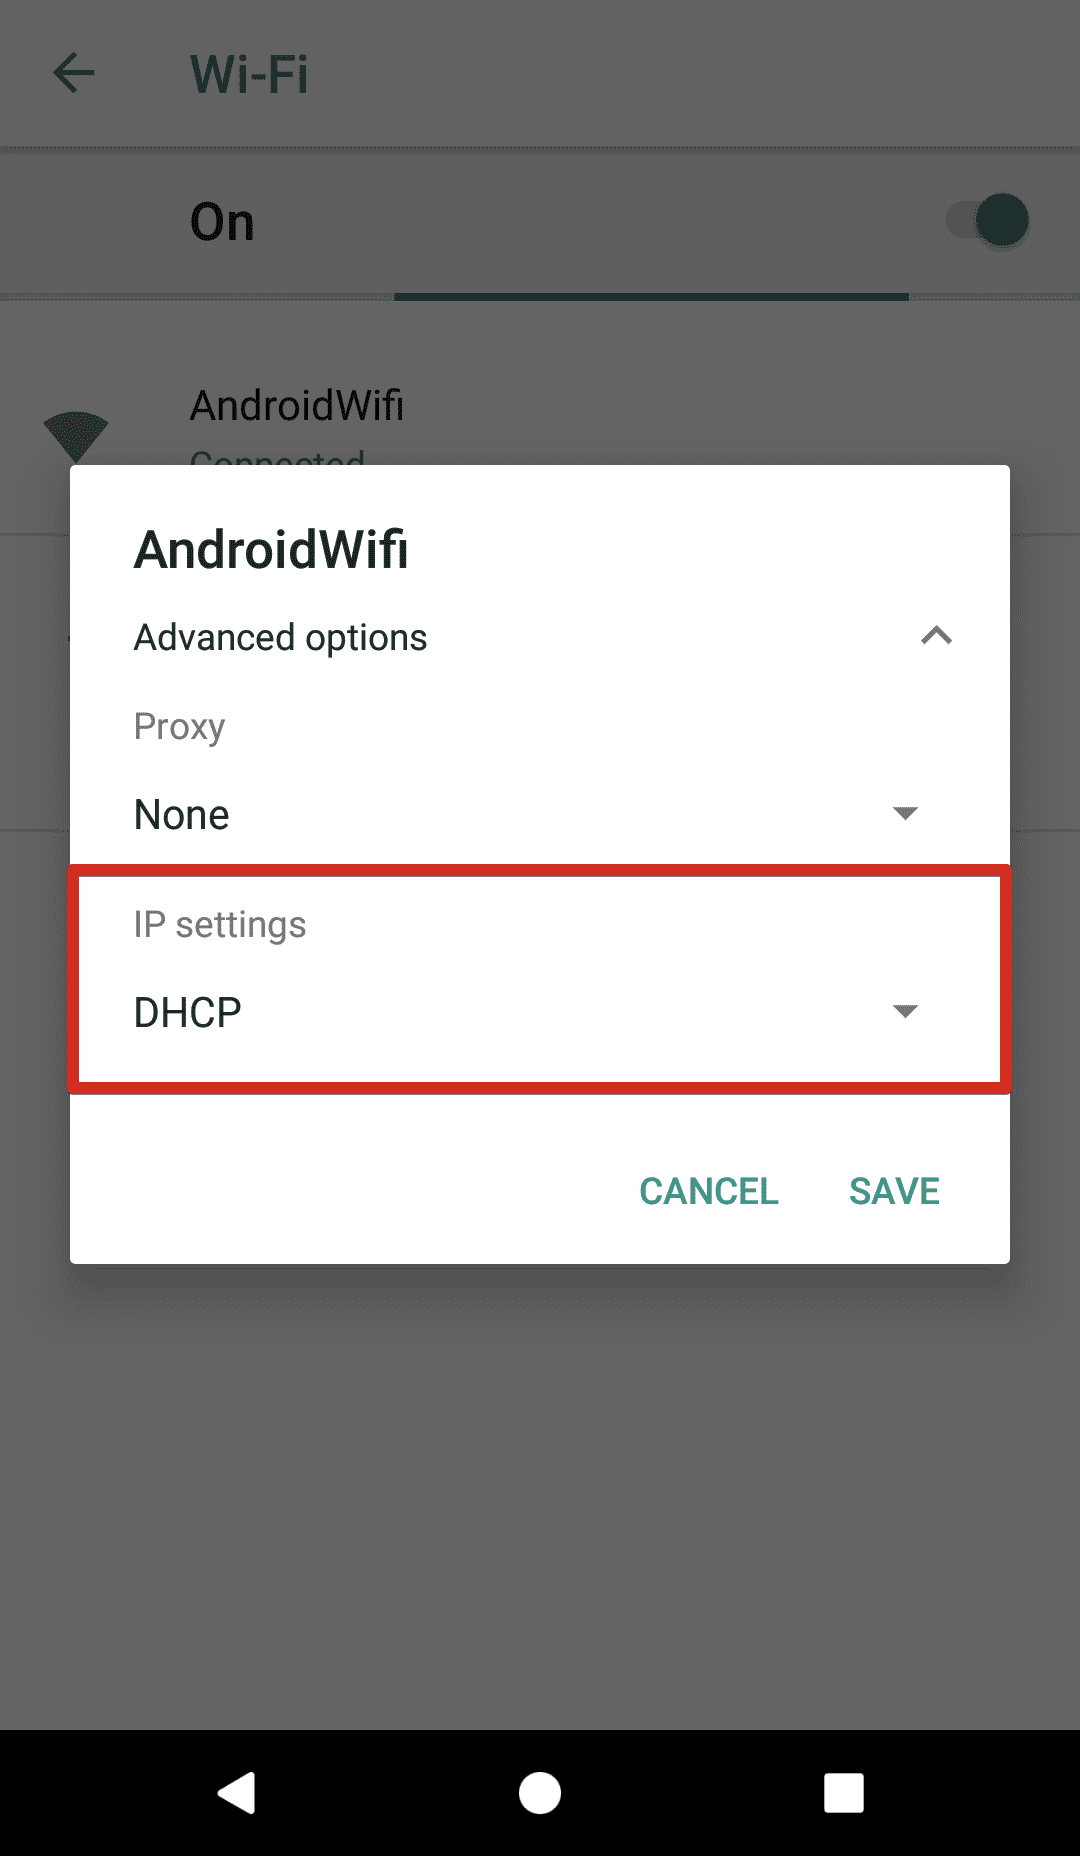 How to change DNS on Android 8 - go to WiFi > IP settings